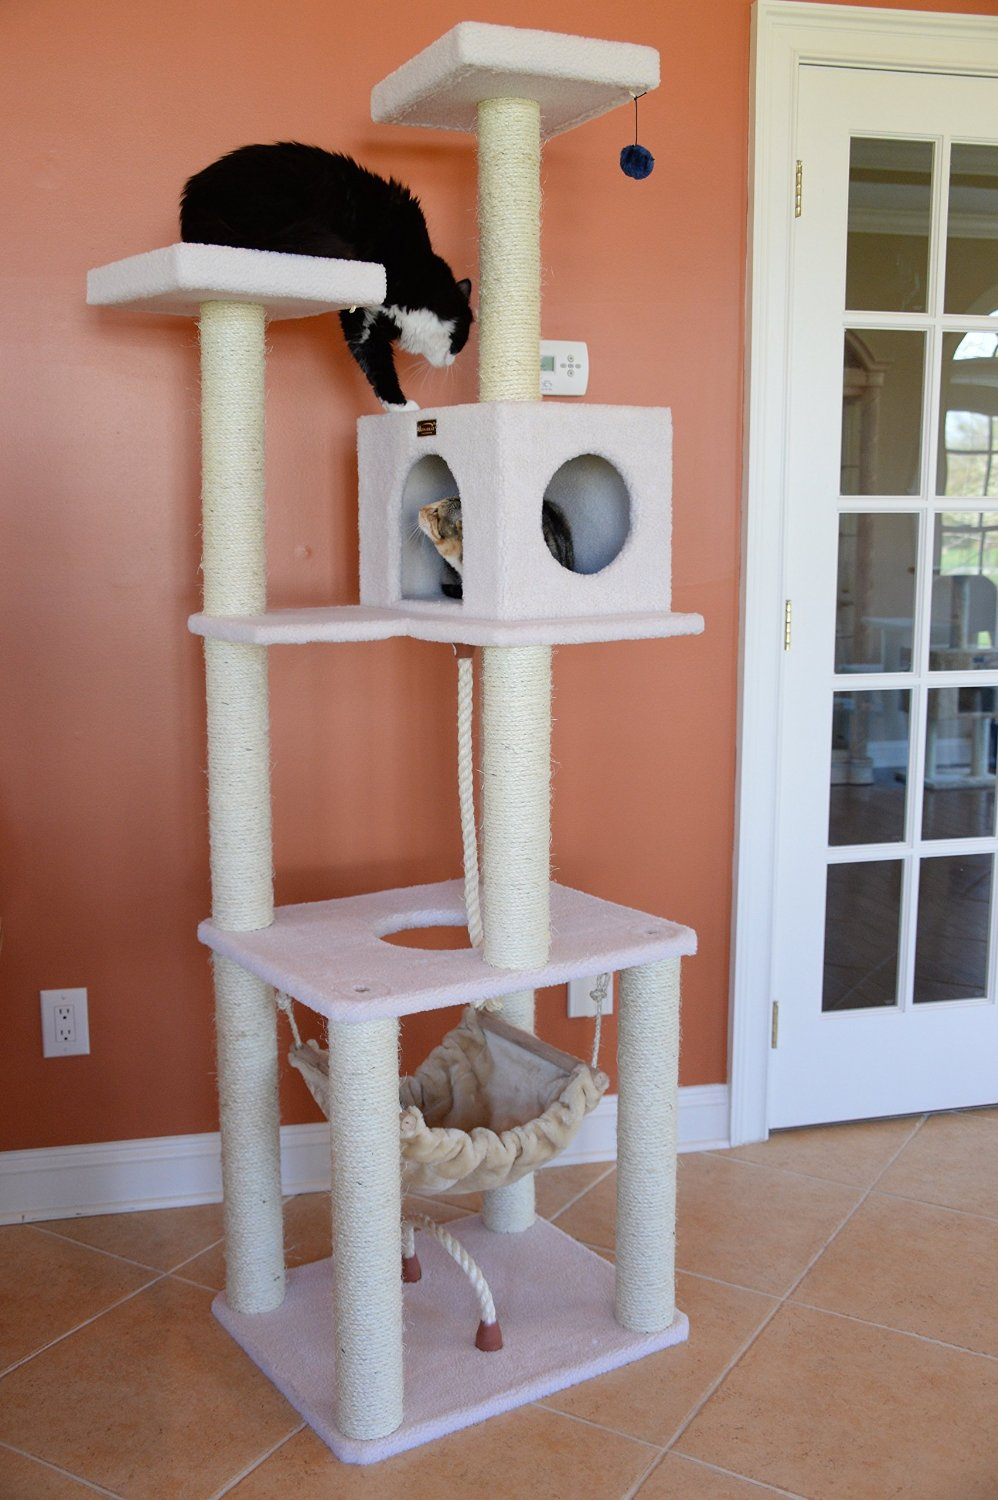 Delightful Armarkat Cat Tree Furniture Condo